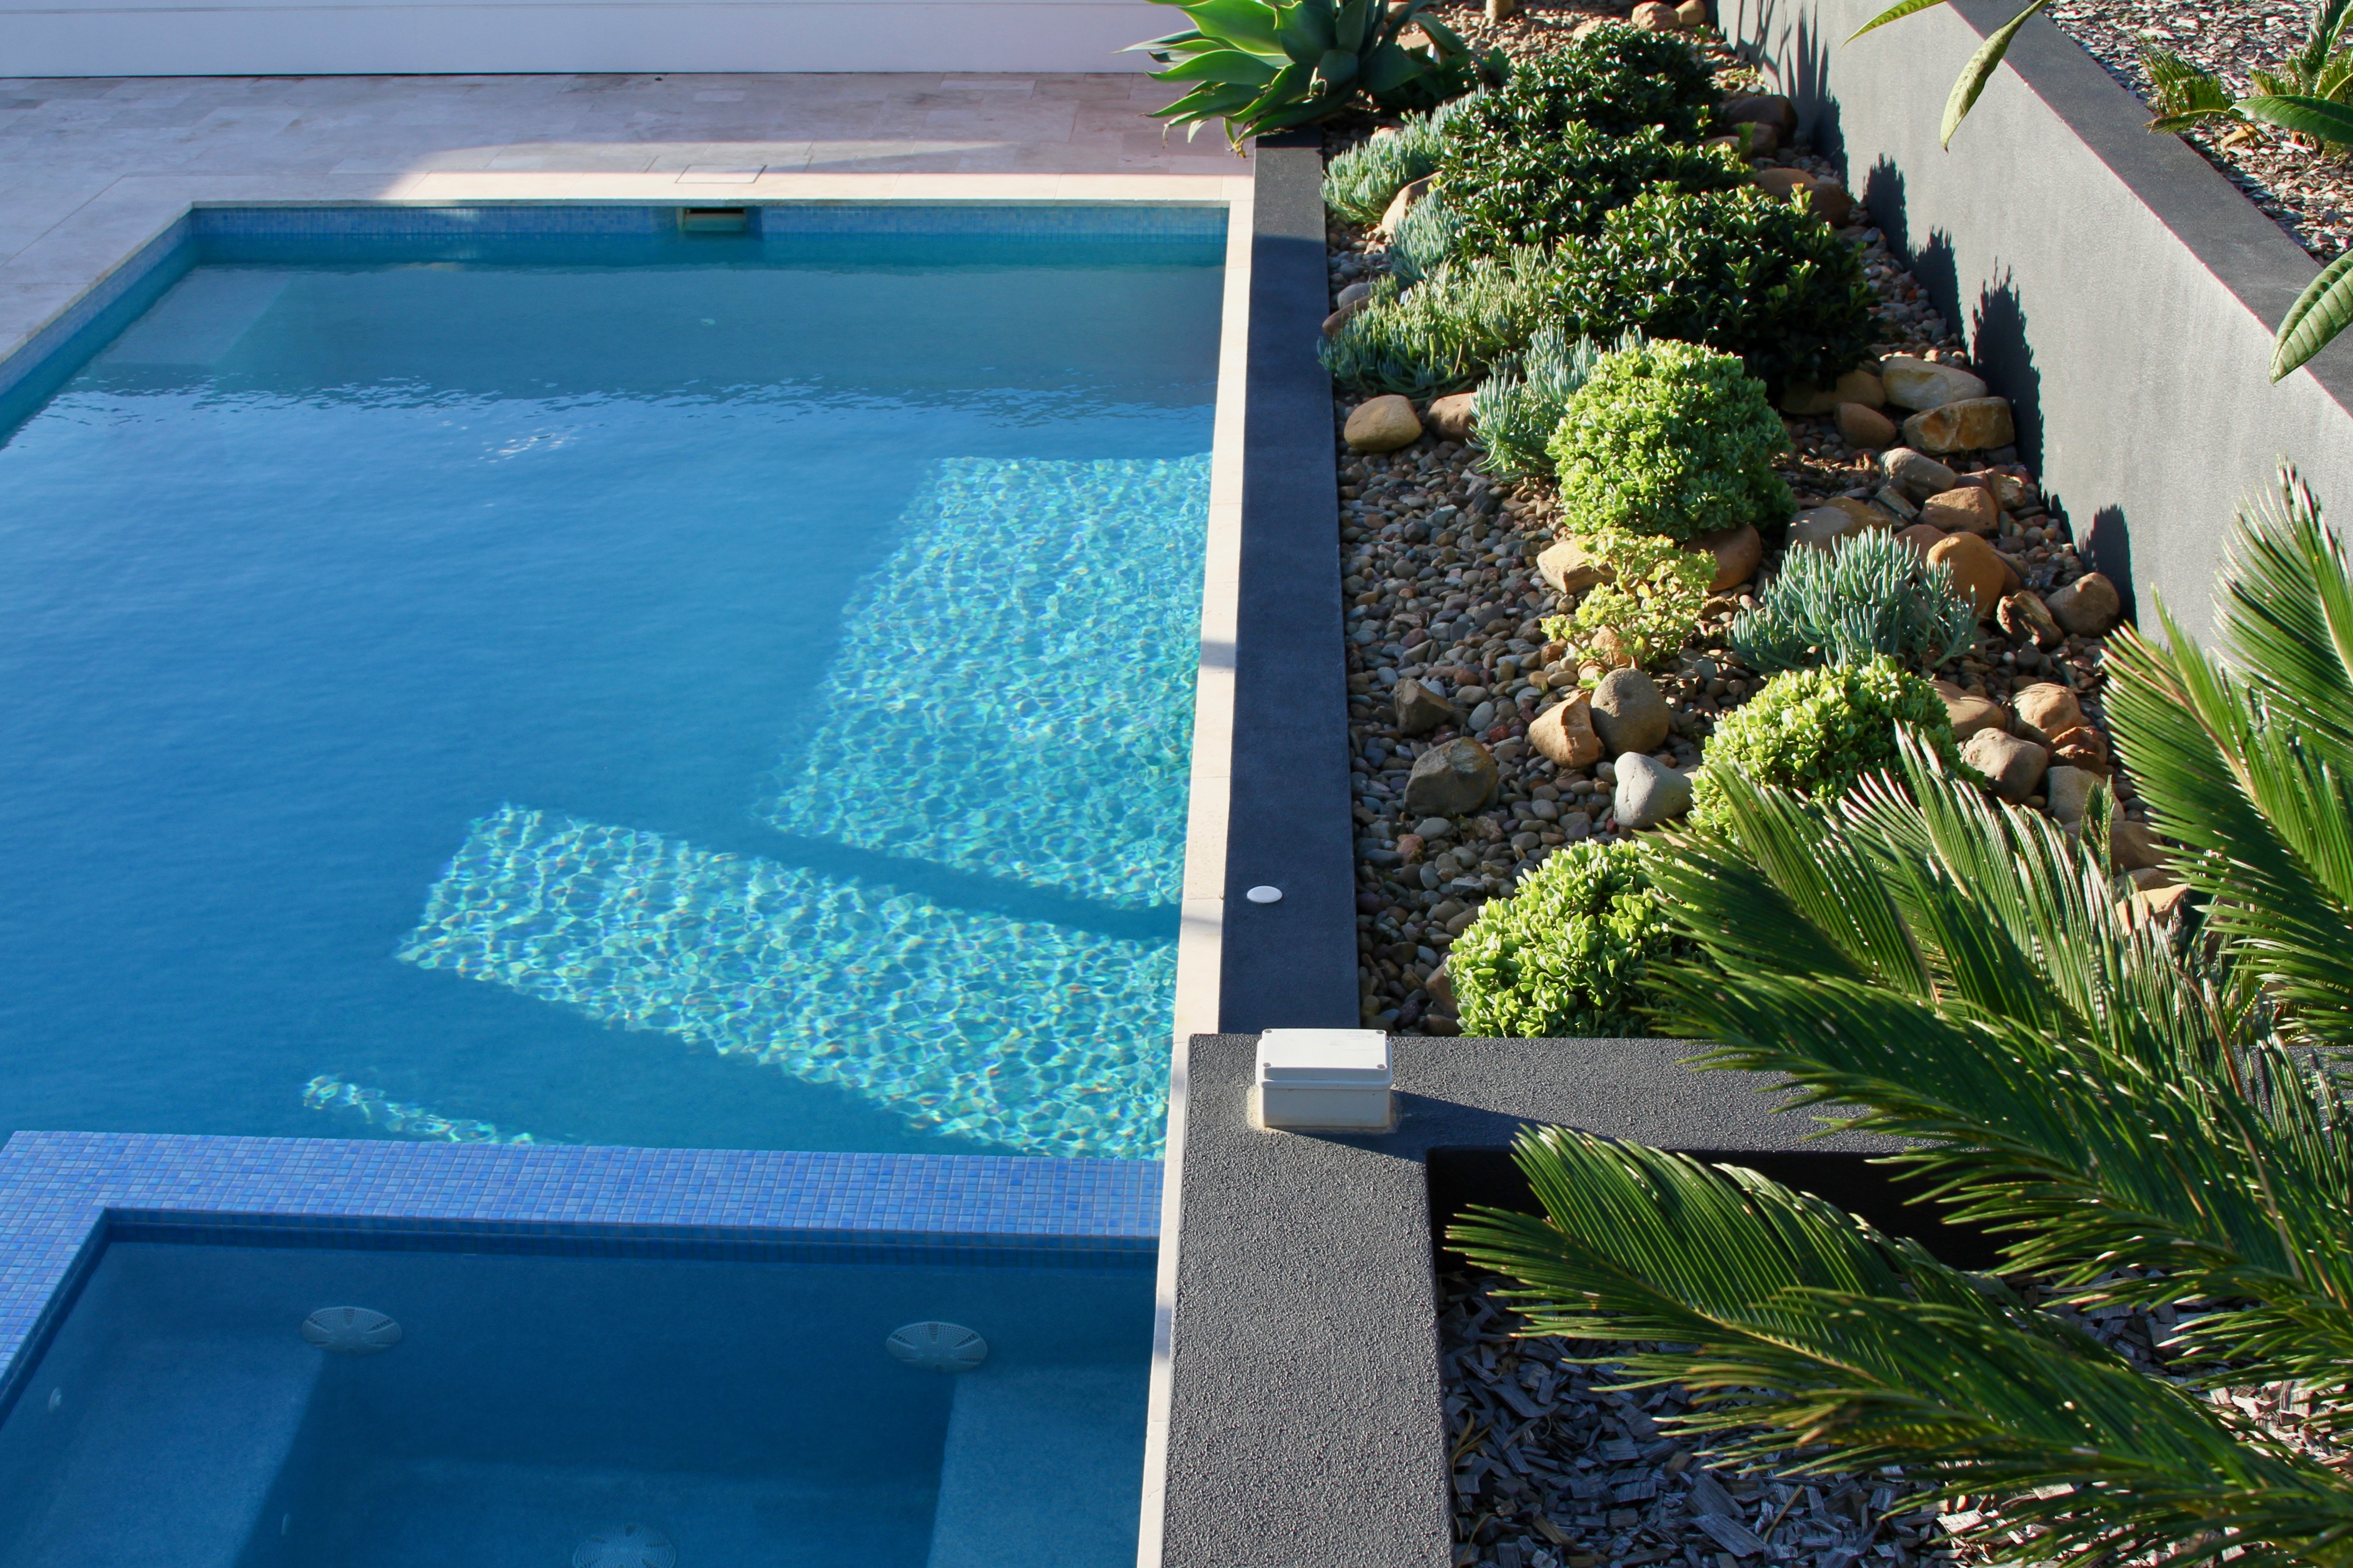 Terrigal Family Pool and Spa